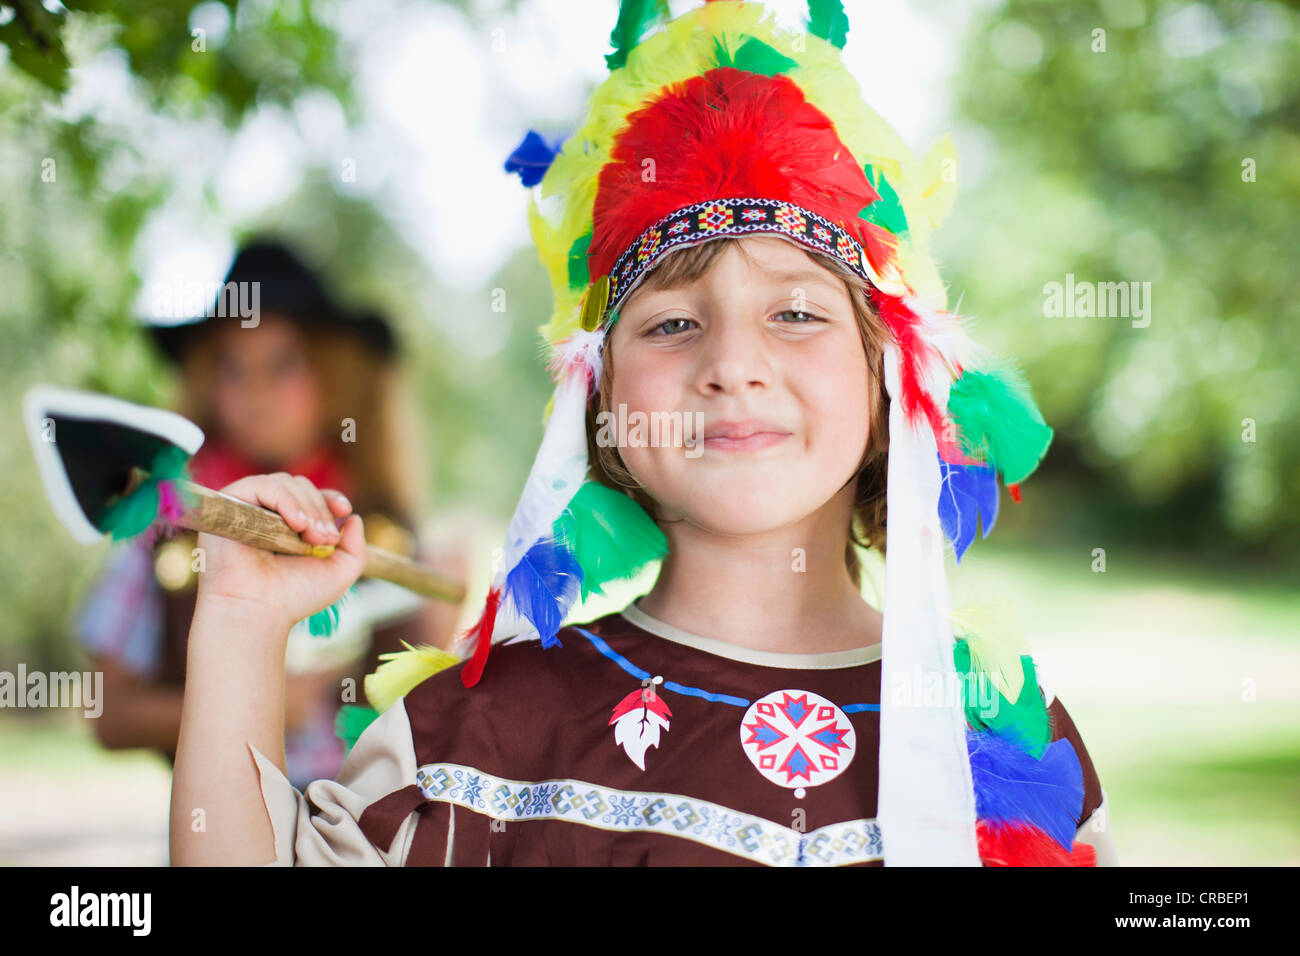 Boy wearing Indian costume outdoors - Stock Image